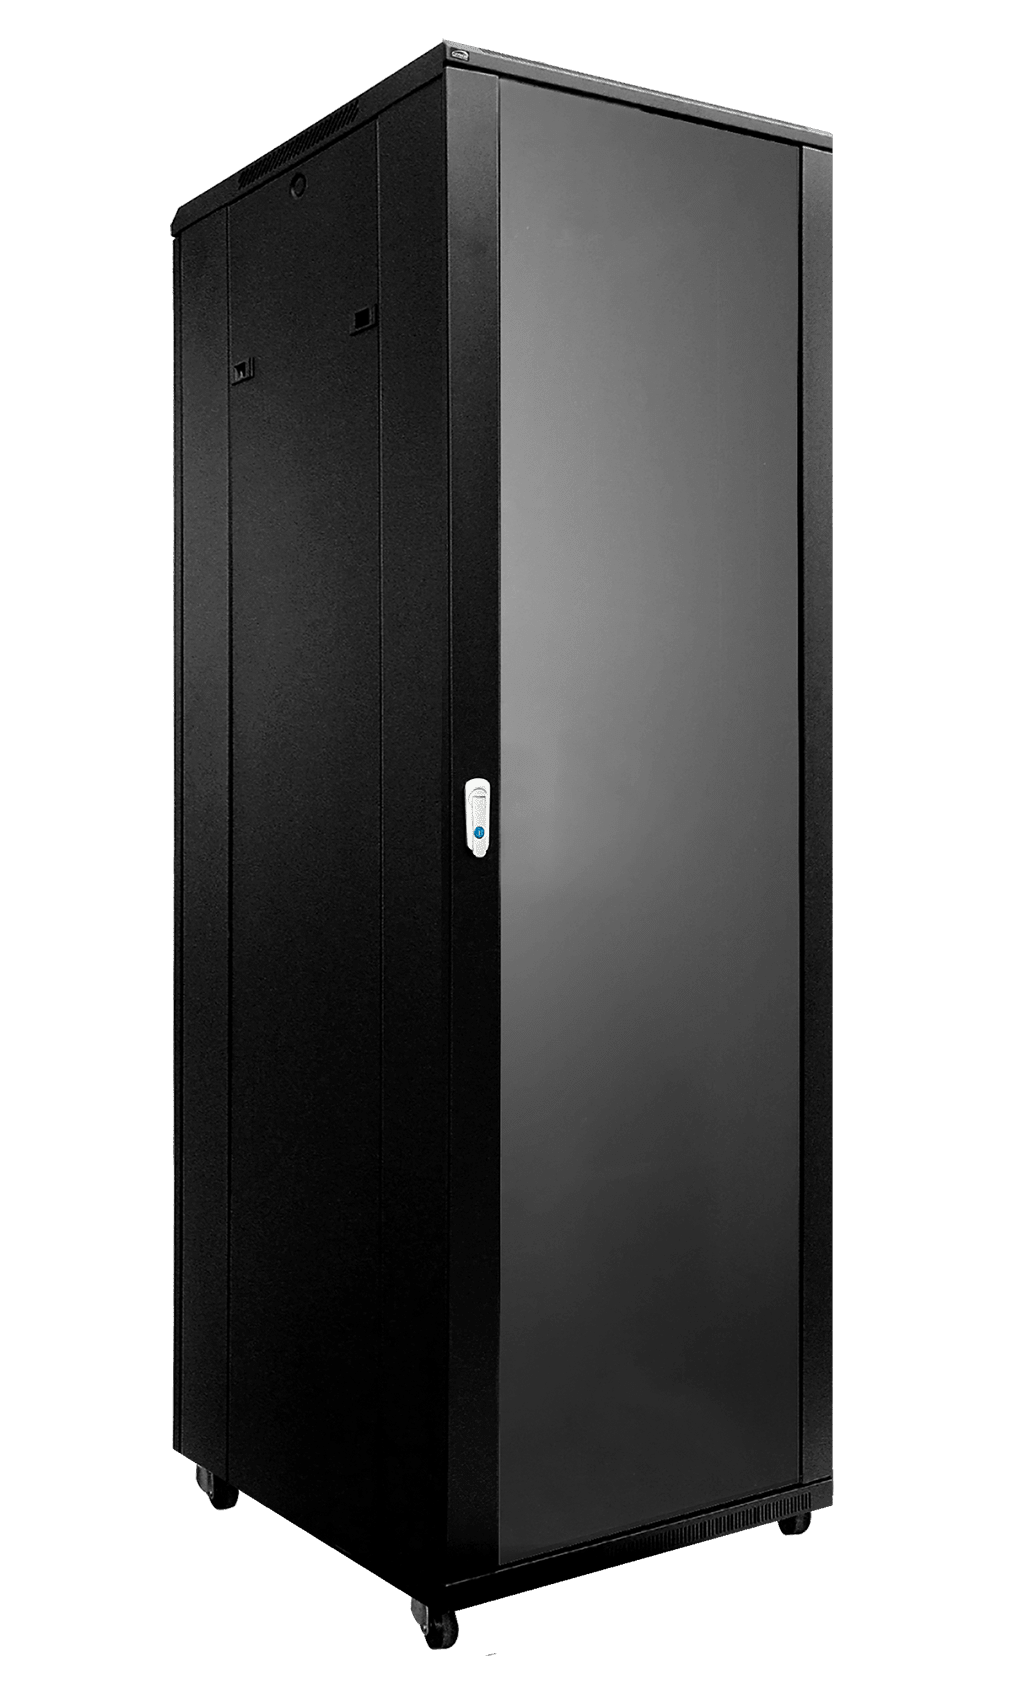 "SPR842 - 19"" rack cabinet - 42 units - 600mm W x 800mm D"